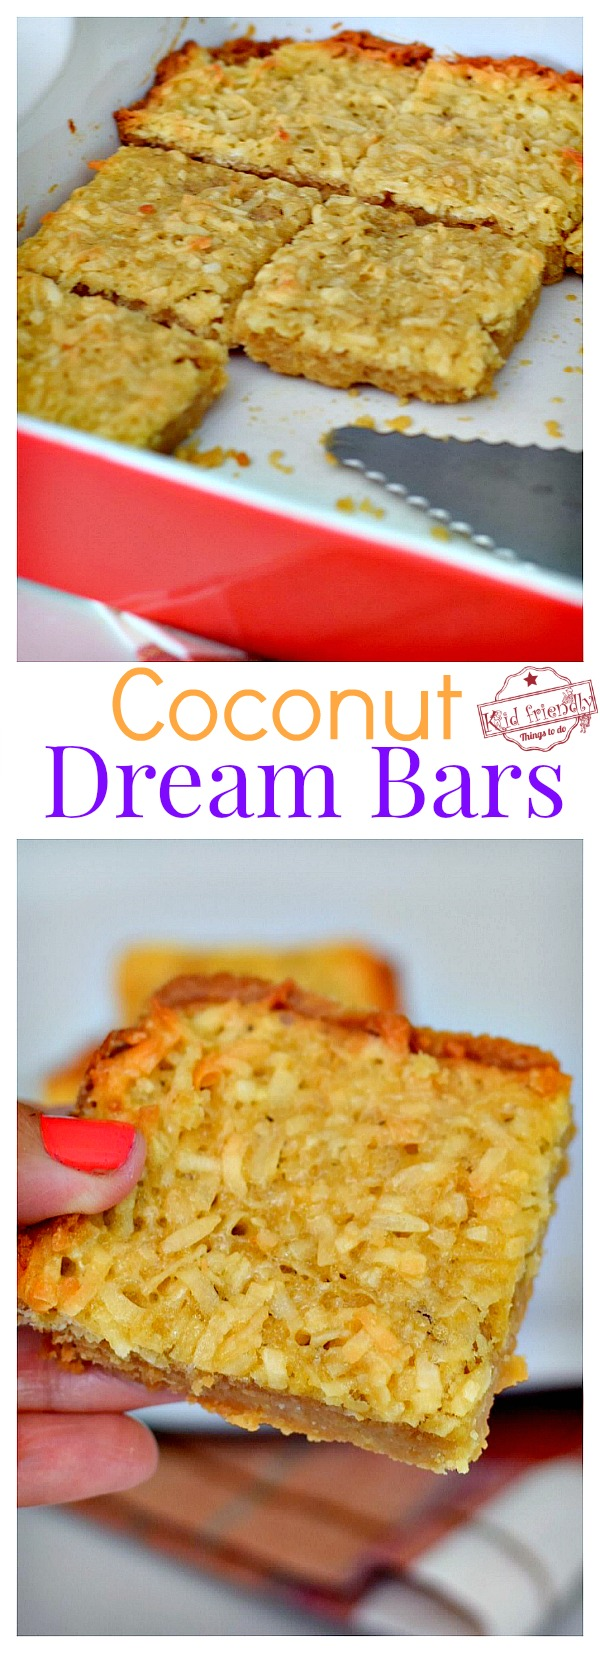 Coconut Dream Bar